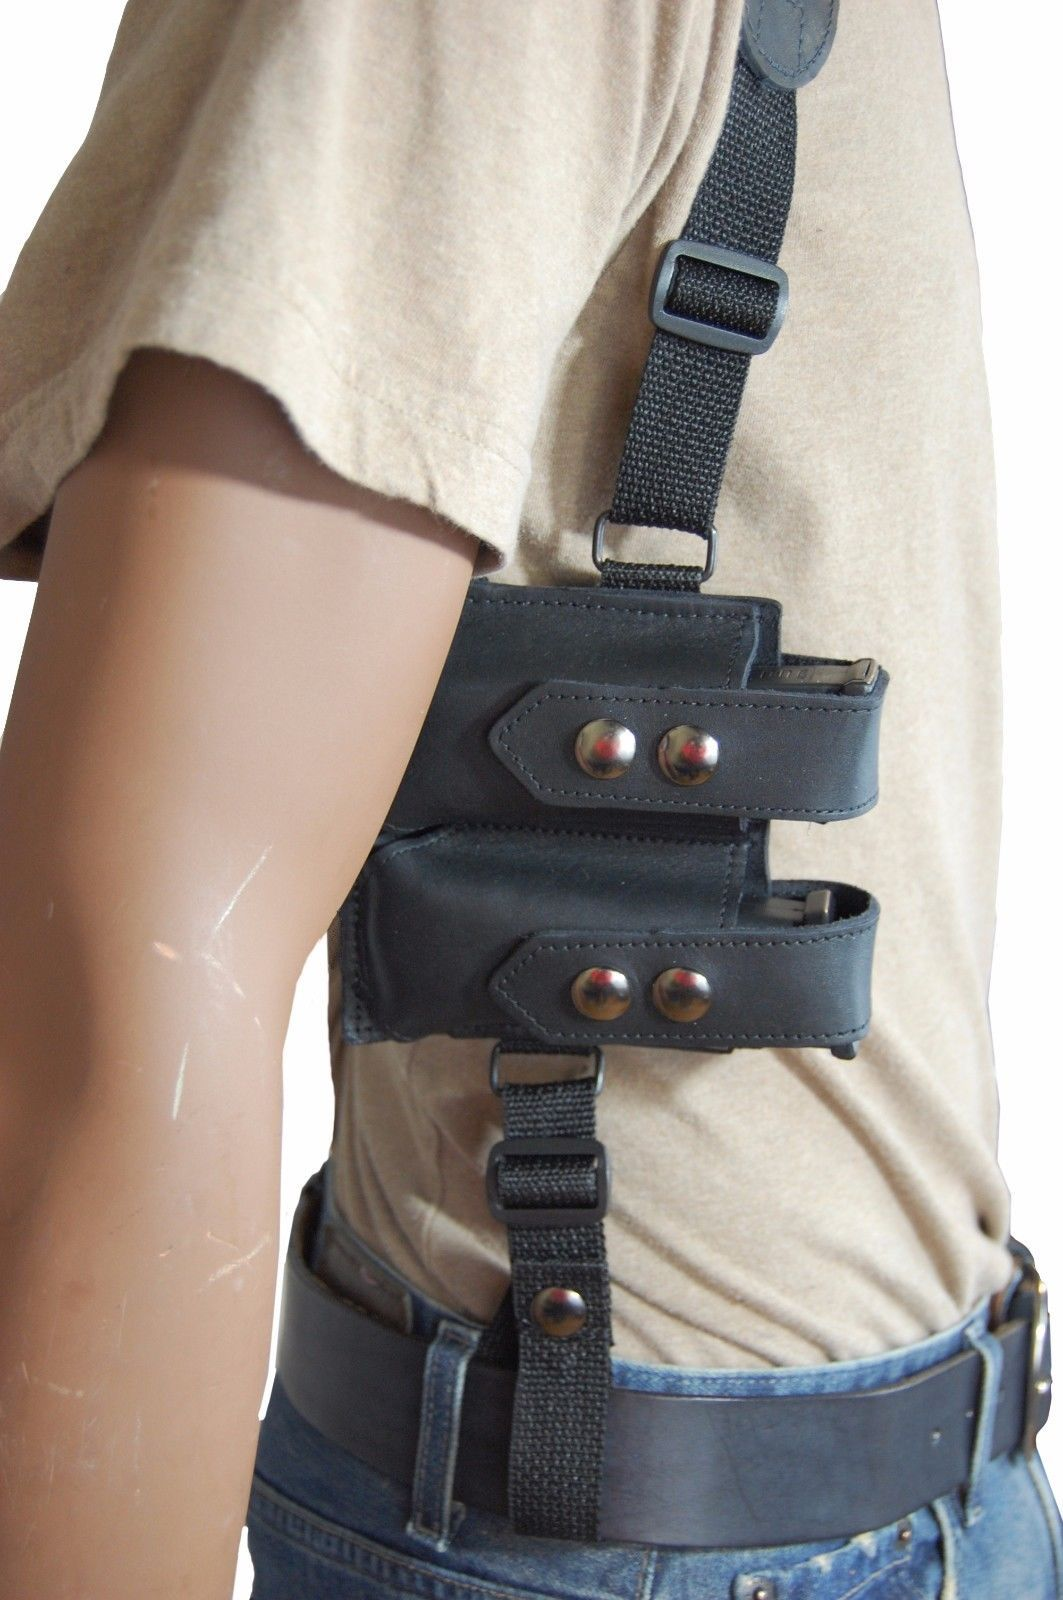 New Barsony Black Leather Shoulder Holster Mag Pouch Colt Springfield UltraComp